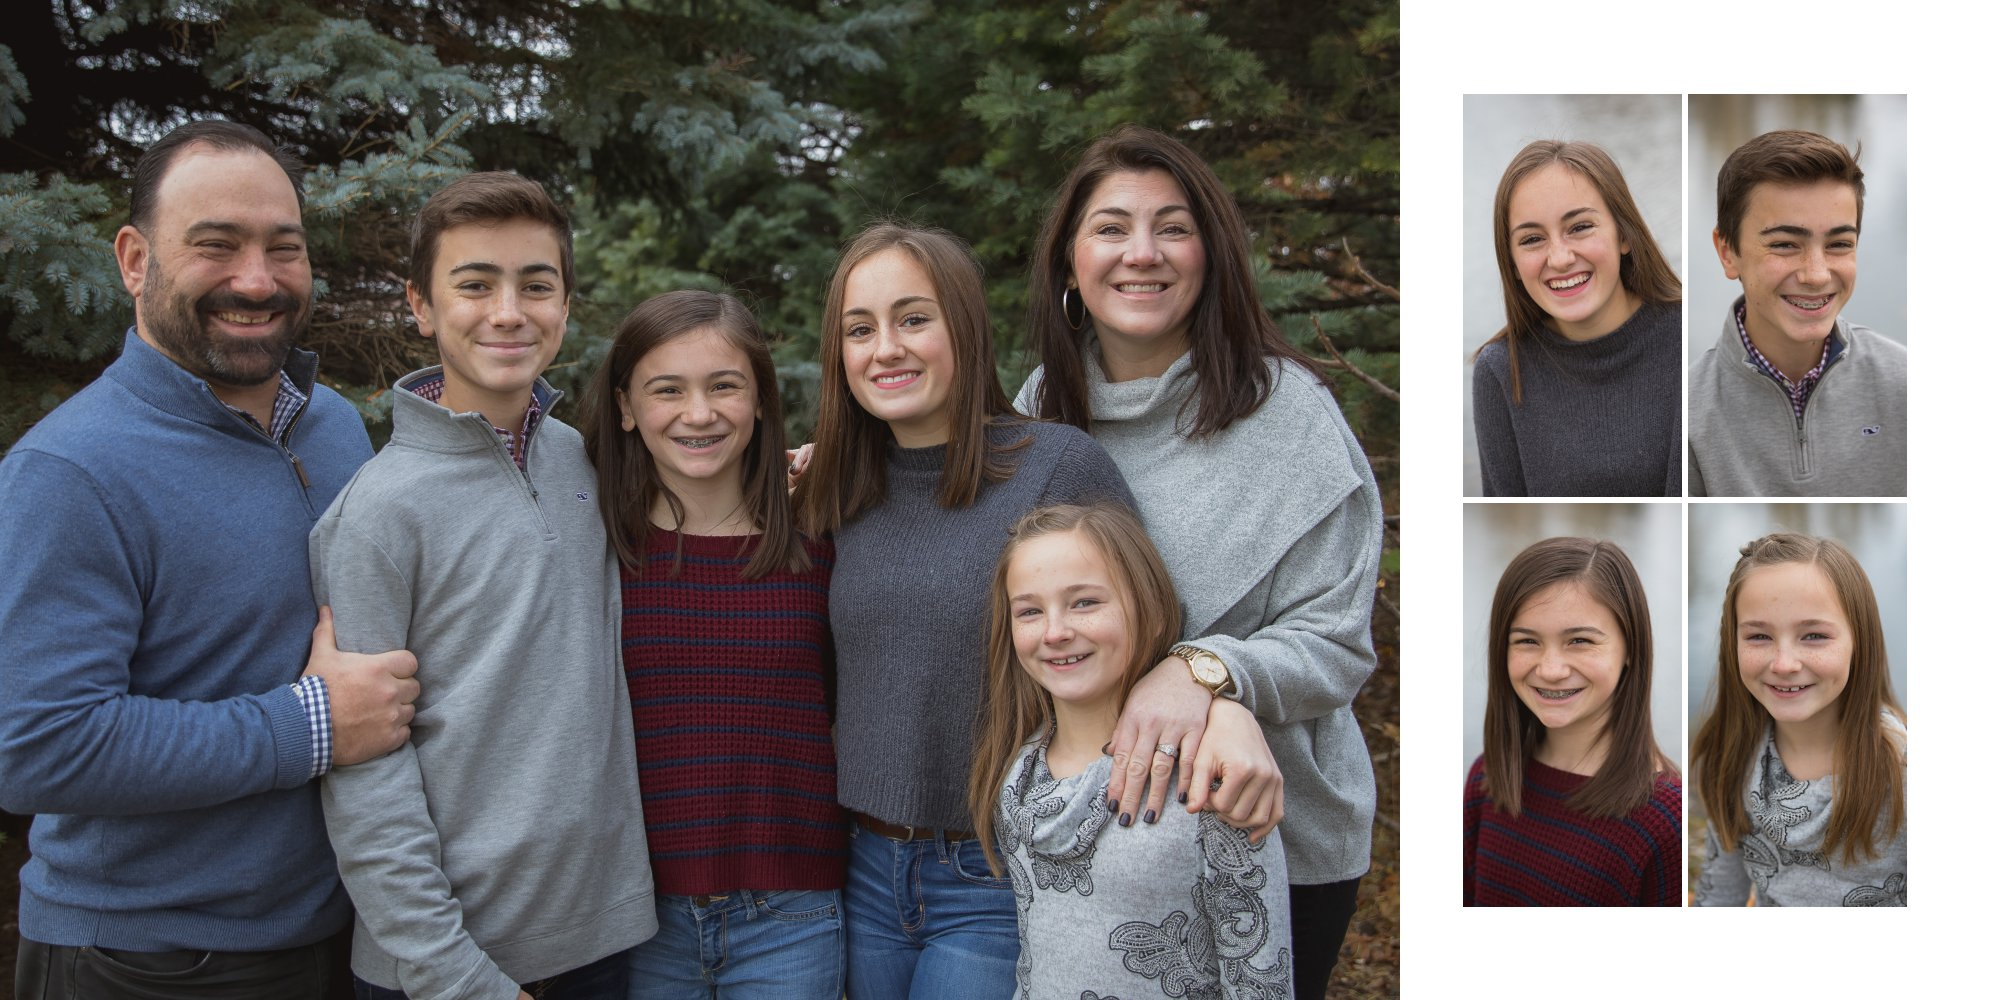 Wisniewski Family Picture 2018